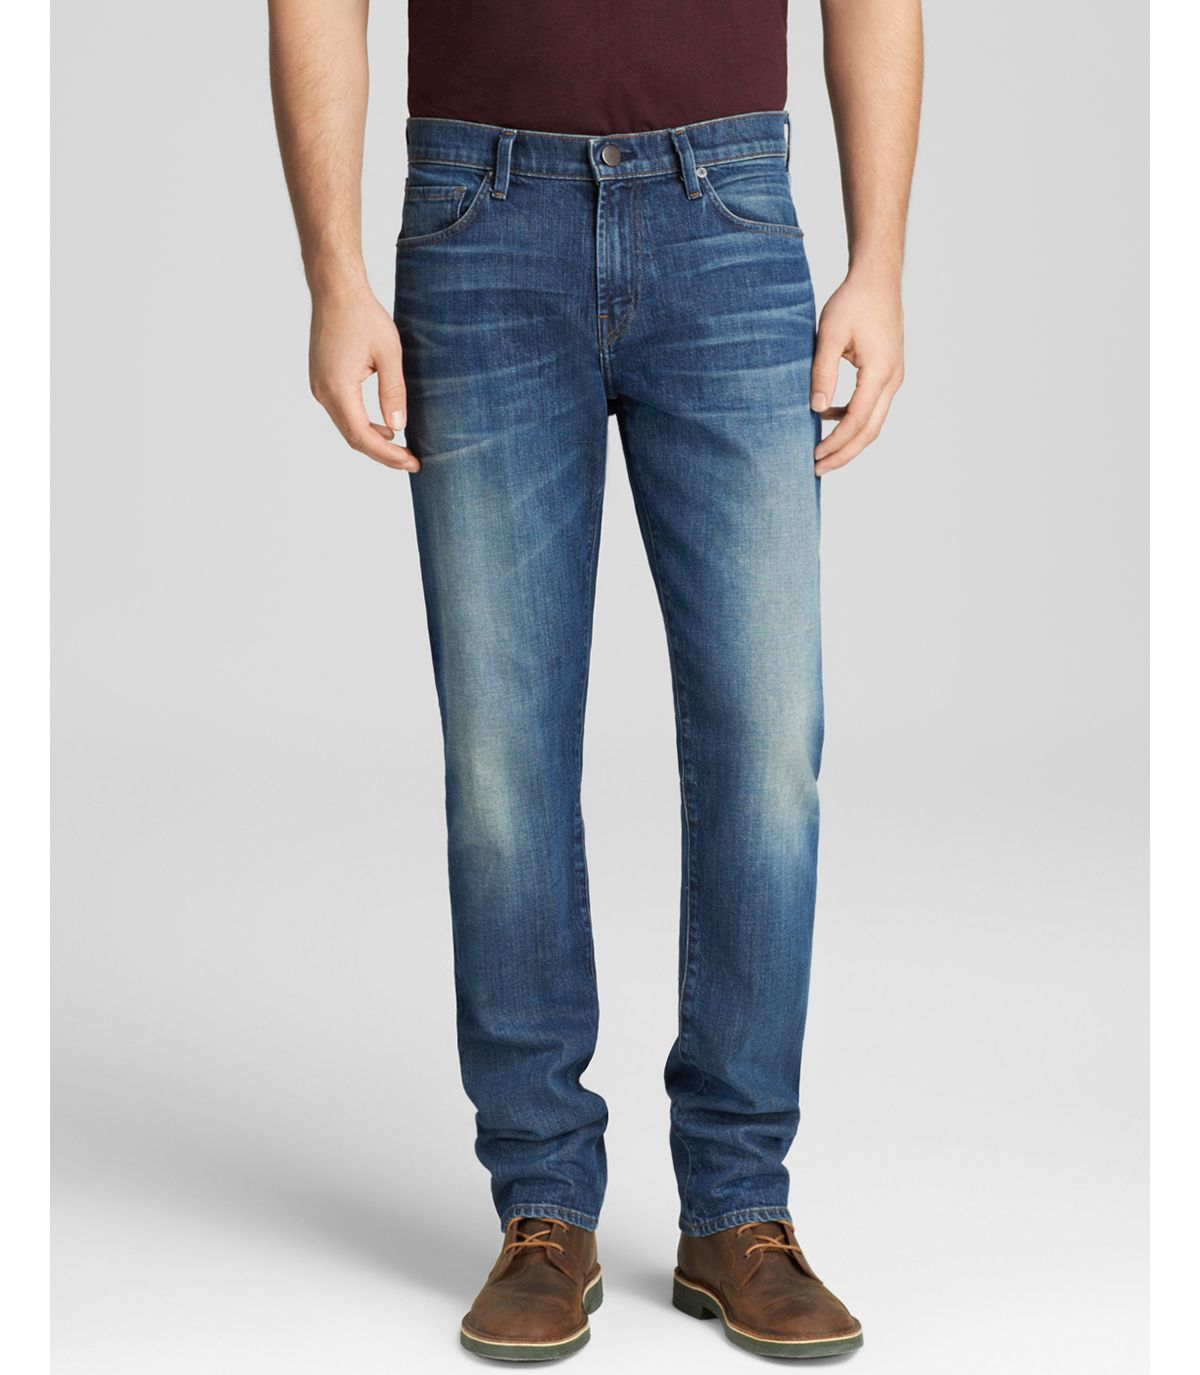 j brand jeans cole new tapered fit in pierson in blue for men pierson lyst. Black Bedroom Furniture Sets. Home Design Ideas